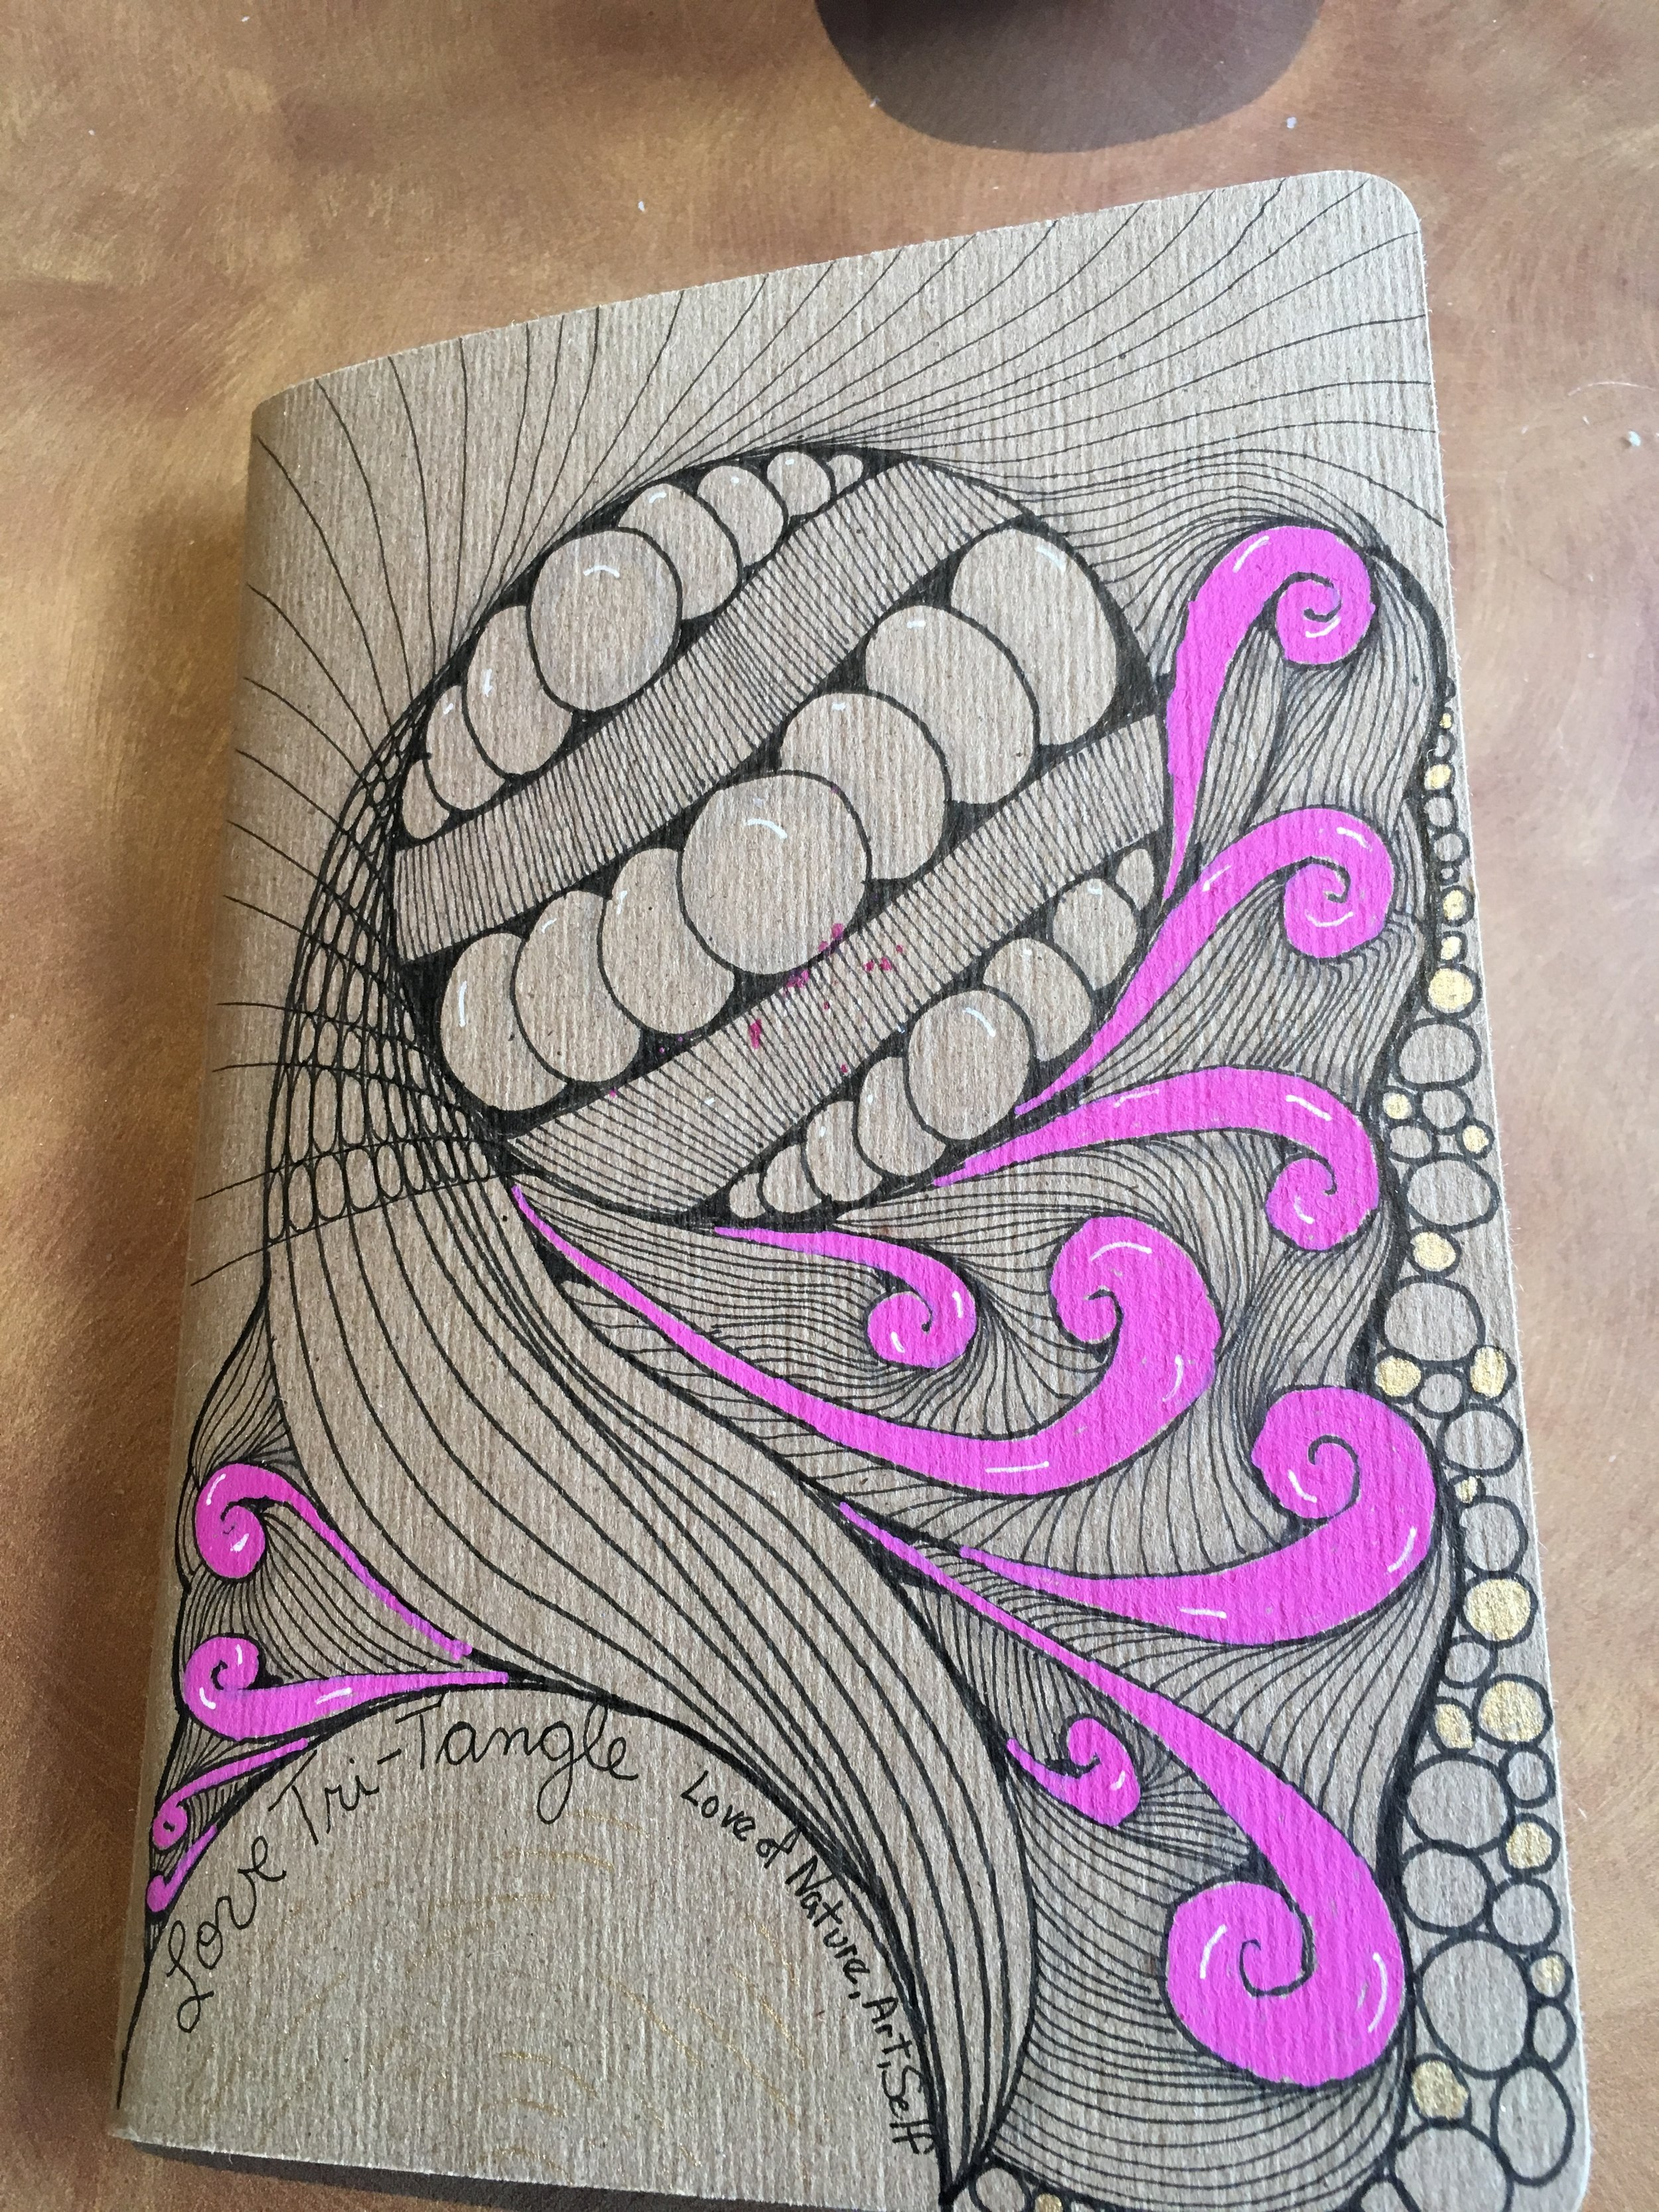 Purposeful Art Journaling - Learn to use the Zentangle Method of Art in your journey for less stress, more relaxation, self-expression, and meditation.This class meets 1.5 hours/once a week/for 6 weeks and includes an art journal, pens, Zentangle instruction, a plan for your journey, and other supplies.Does not require the prerequisite Zentangle Introduction Workshop